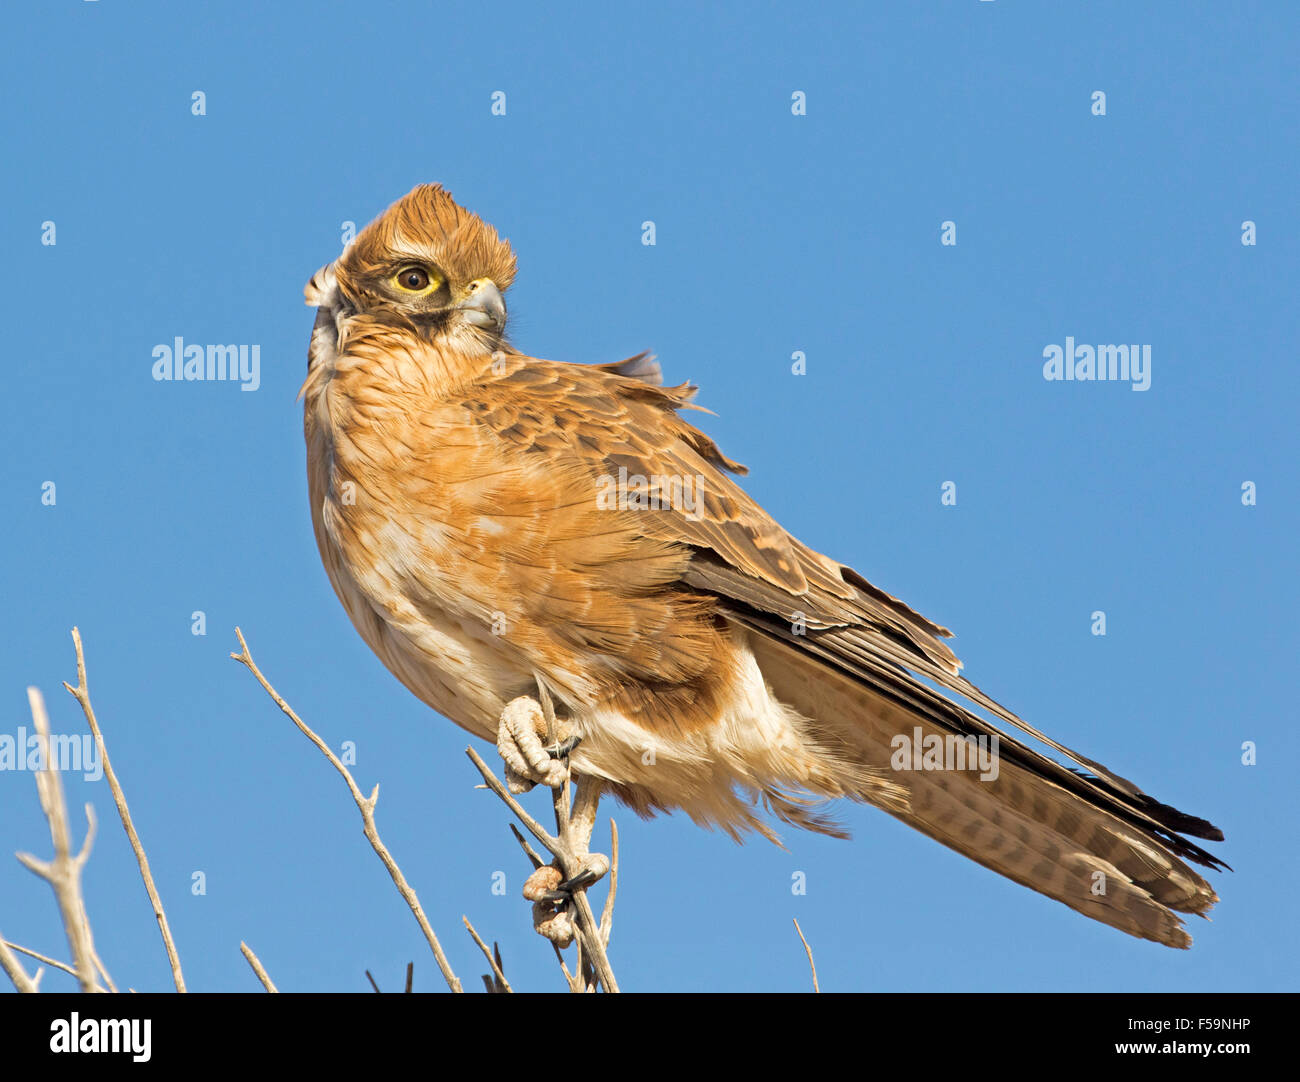 Australian nankeen kestrel, Falco cenchroides, golden brown bird of prey on dead  tree against blue sky in outback - Stock Image